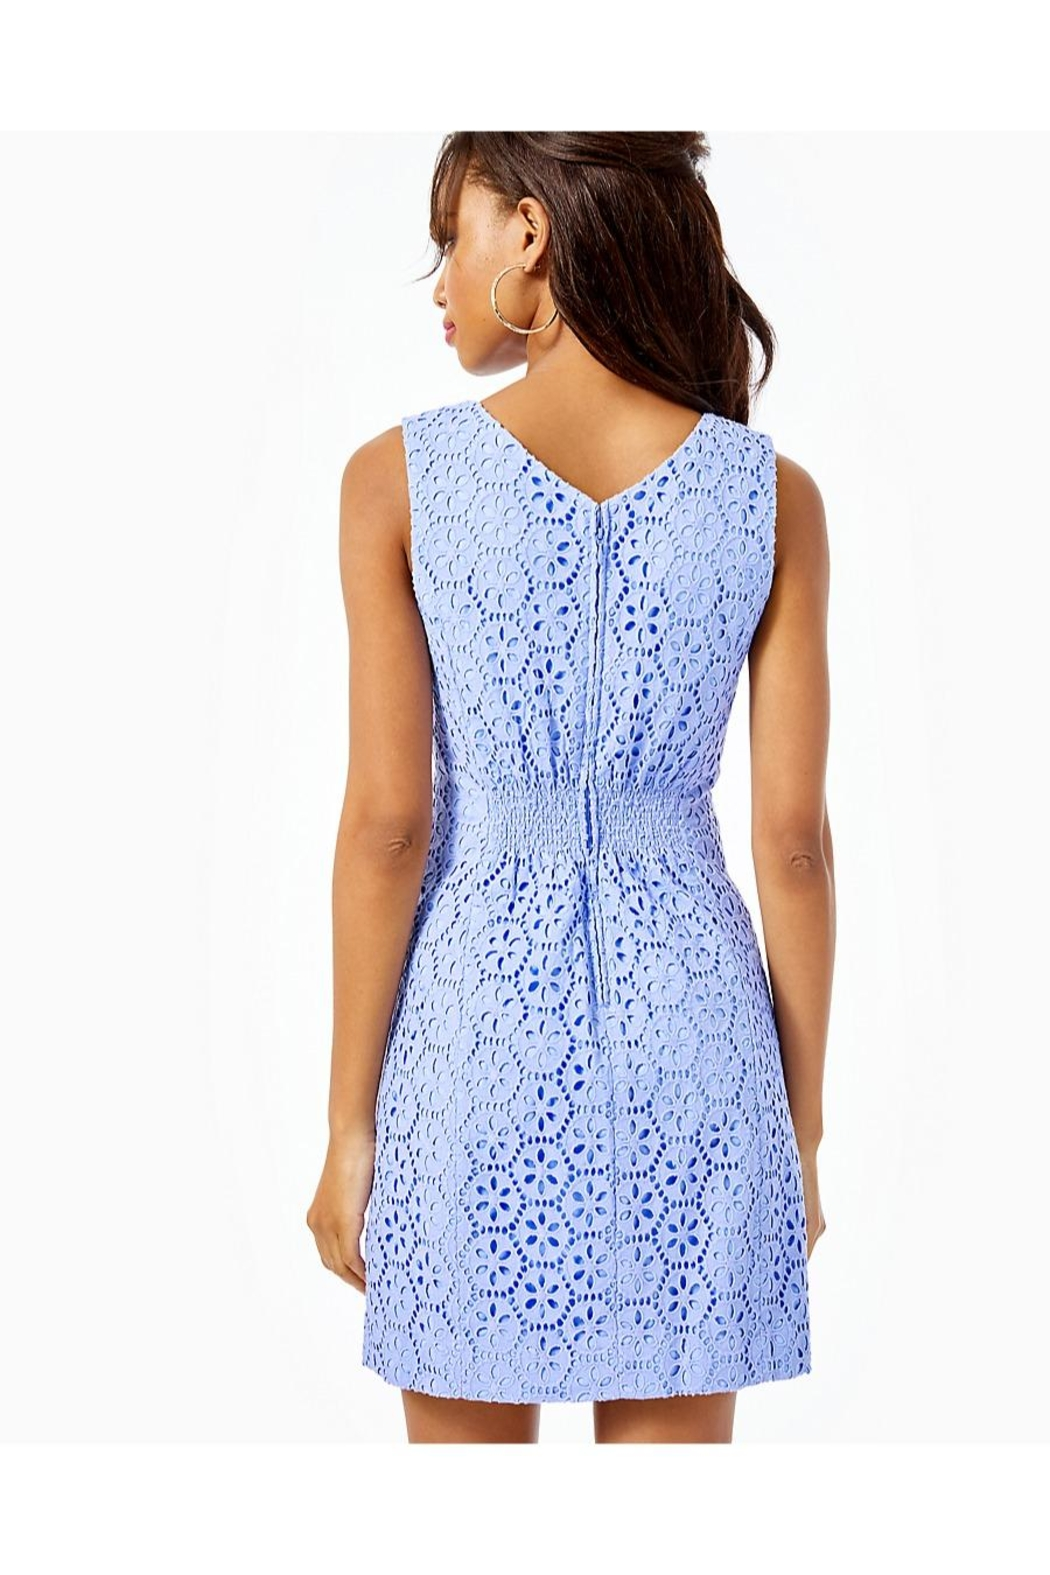 Lilly Pulitzer Clarise Shift Dress - Front Full Image